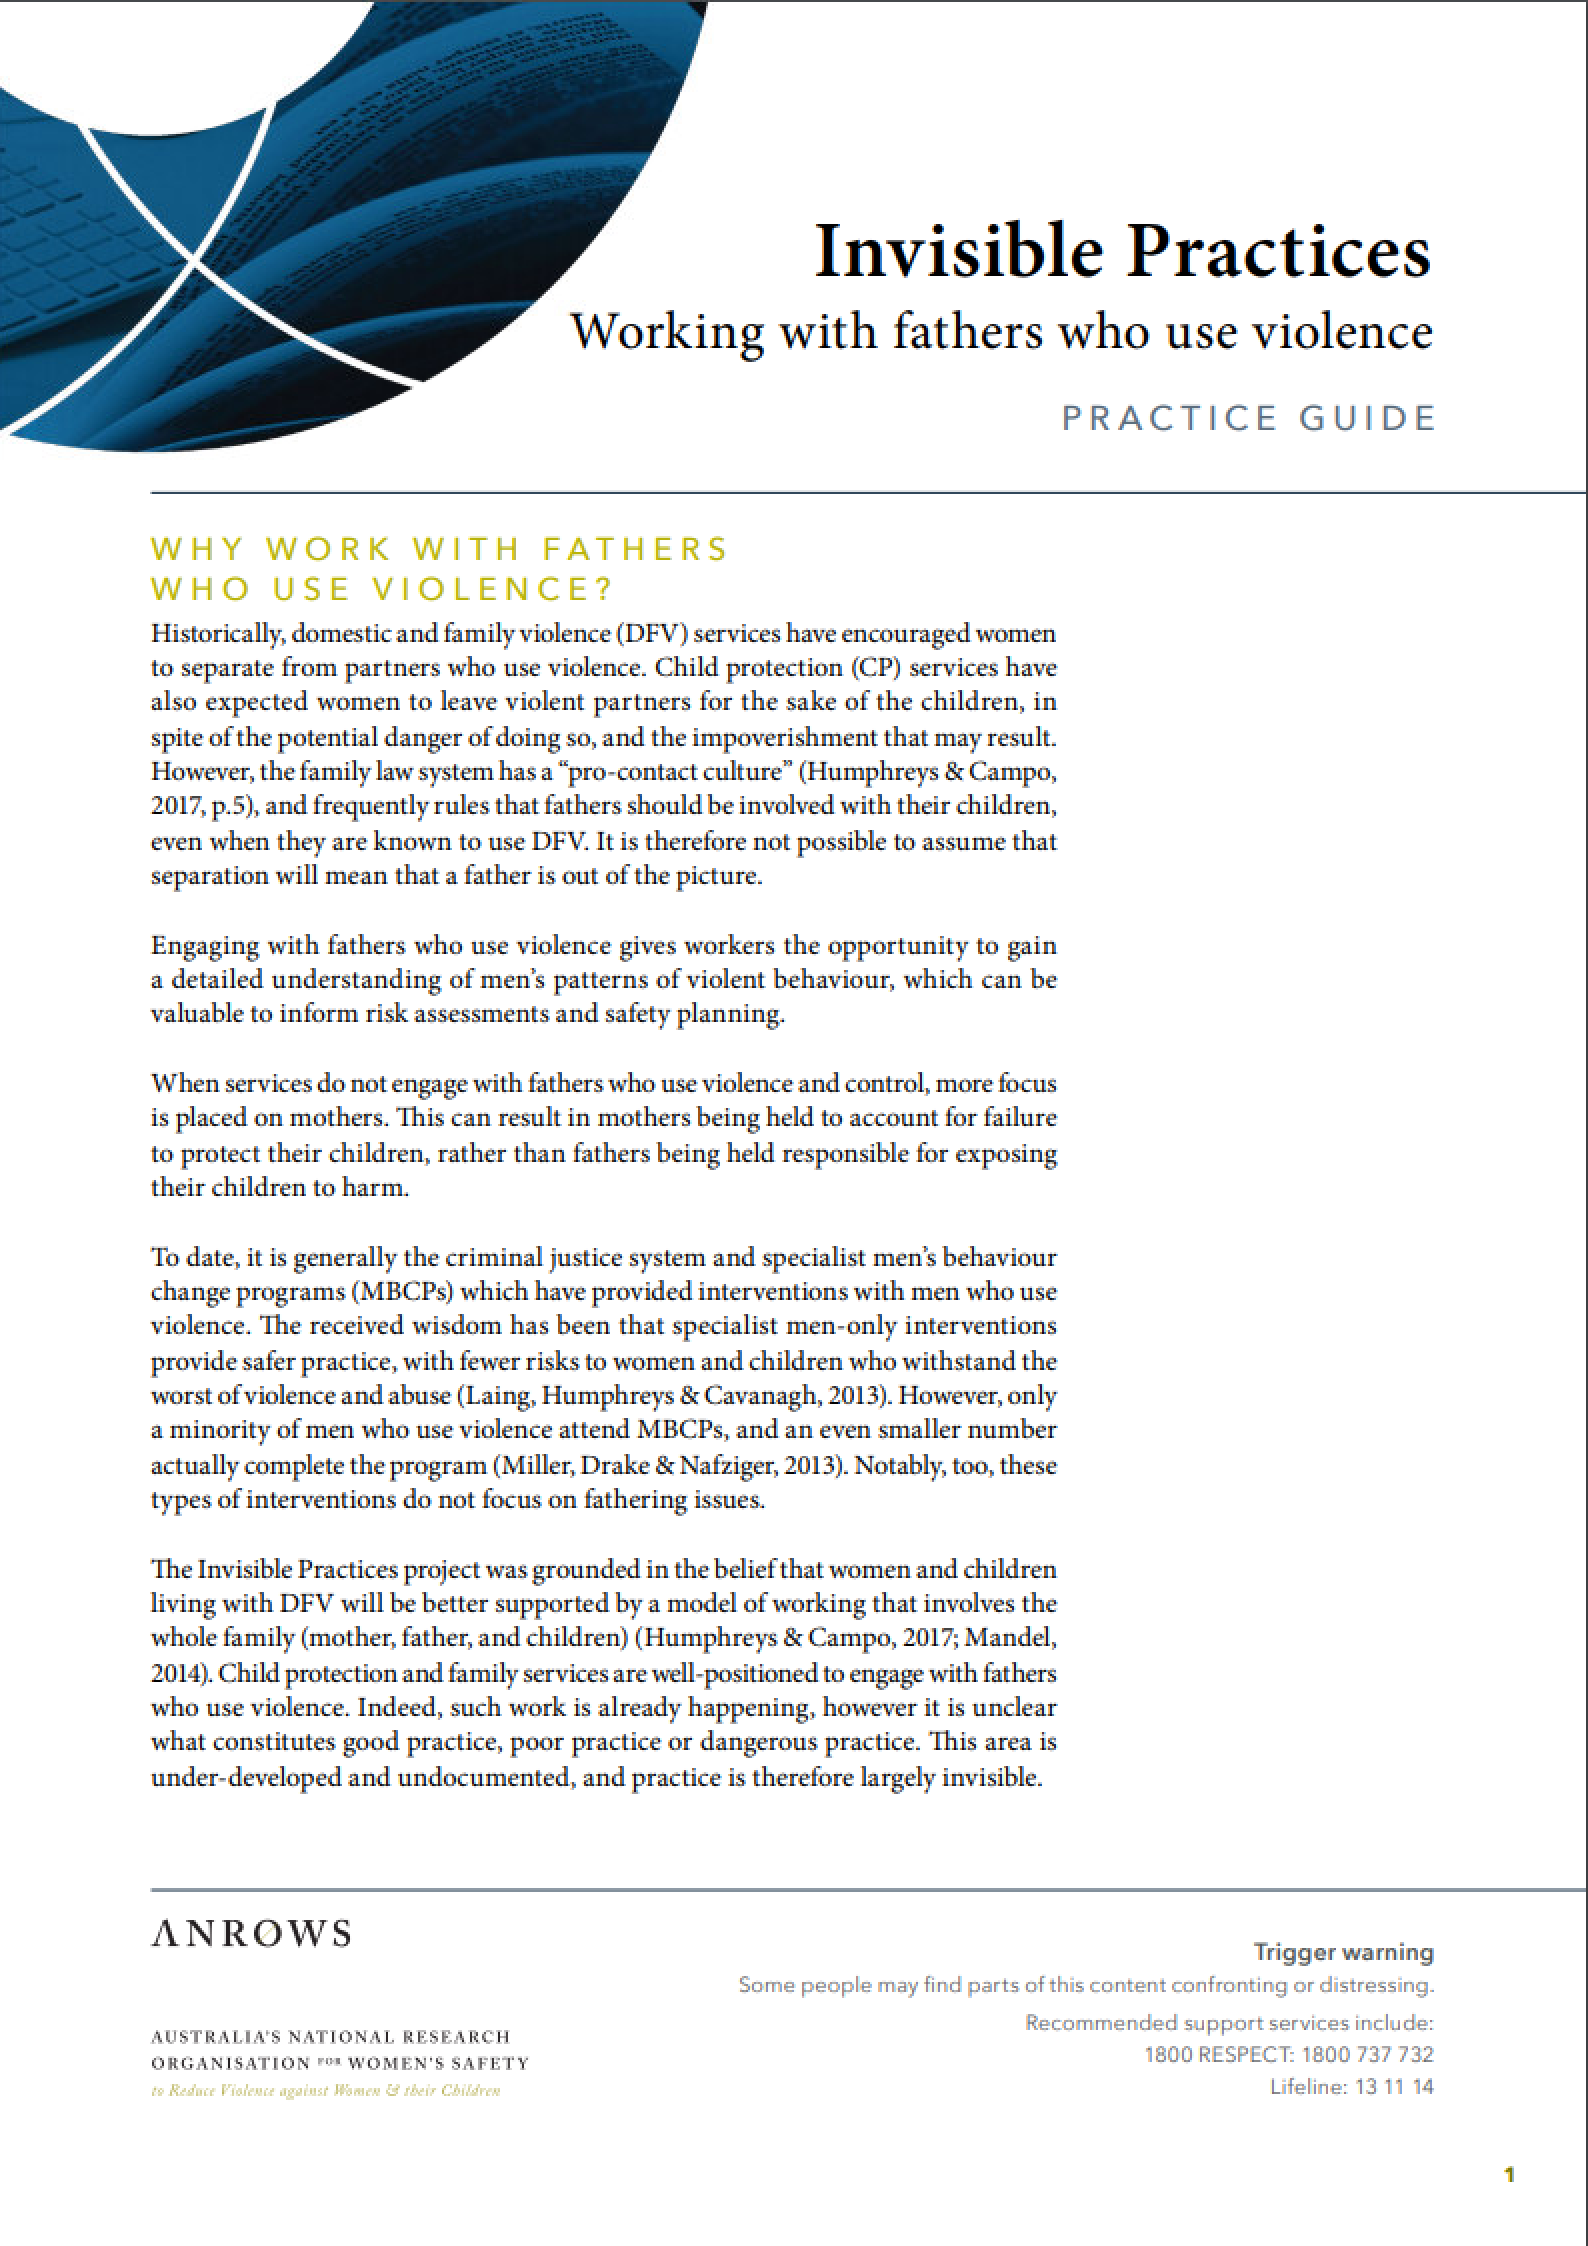 Practice guide:Invisible Practices - Working with fathers who use violence